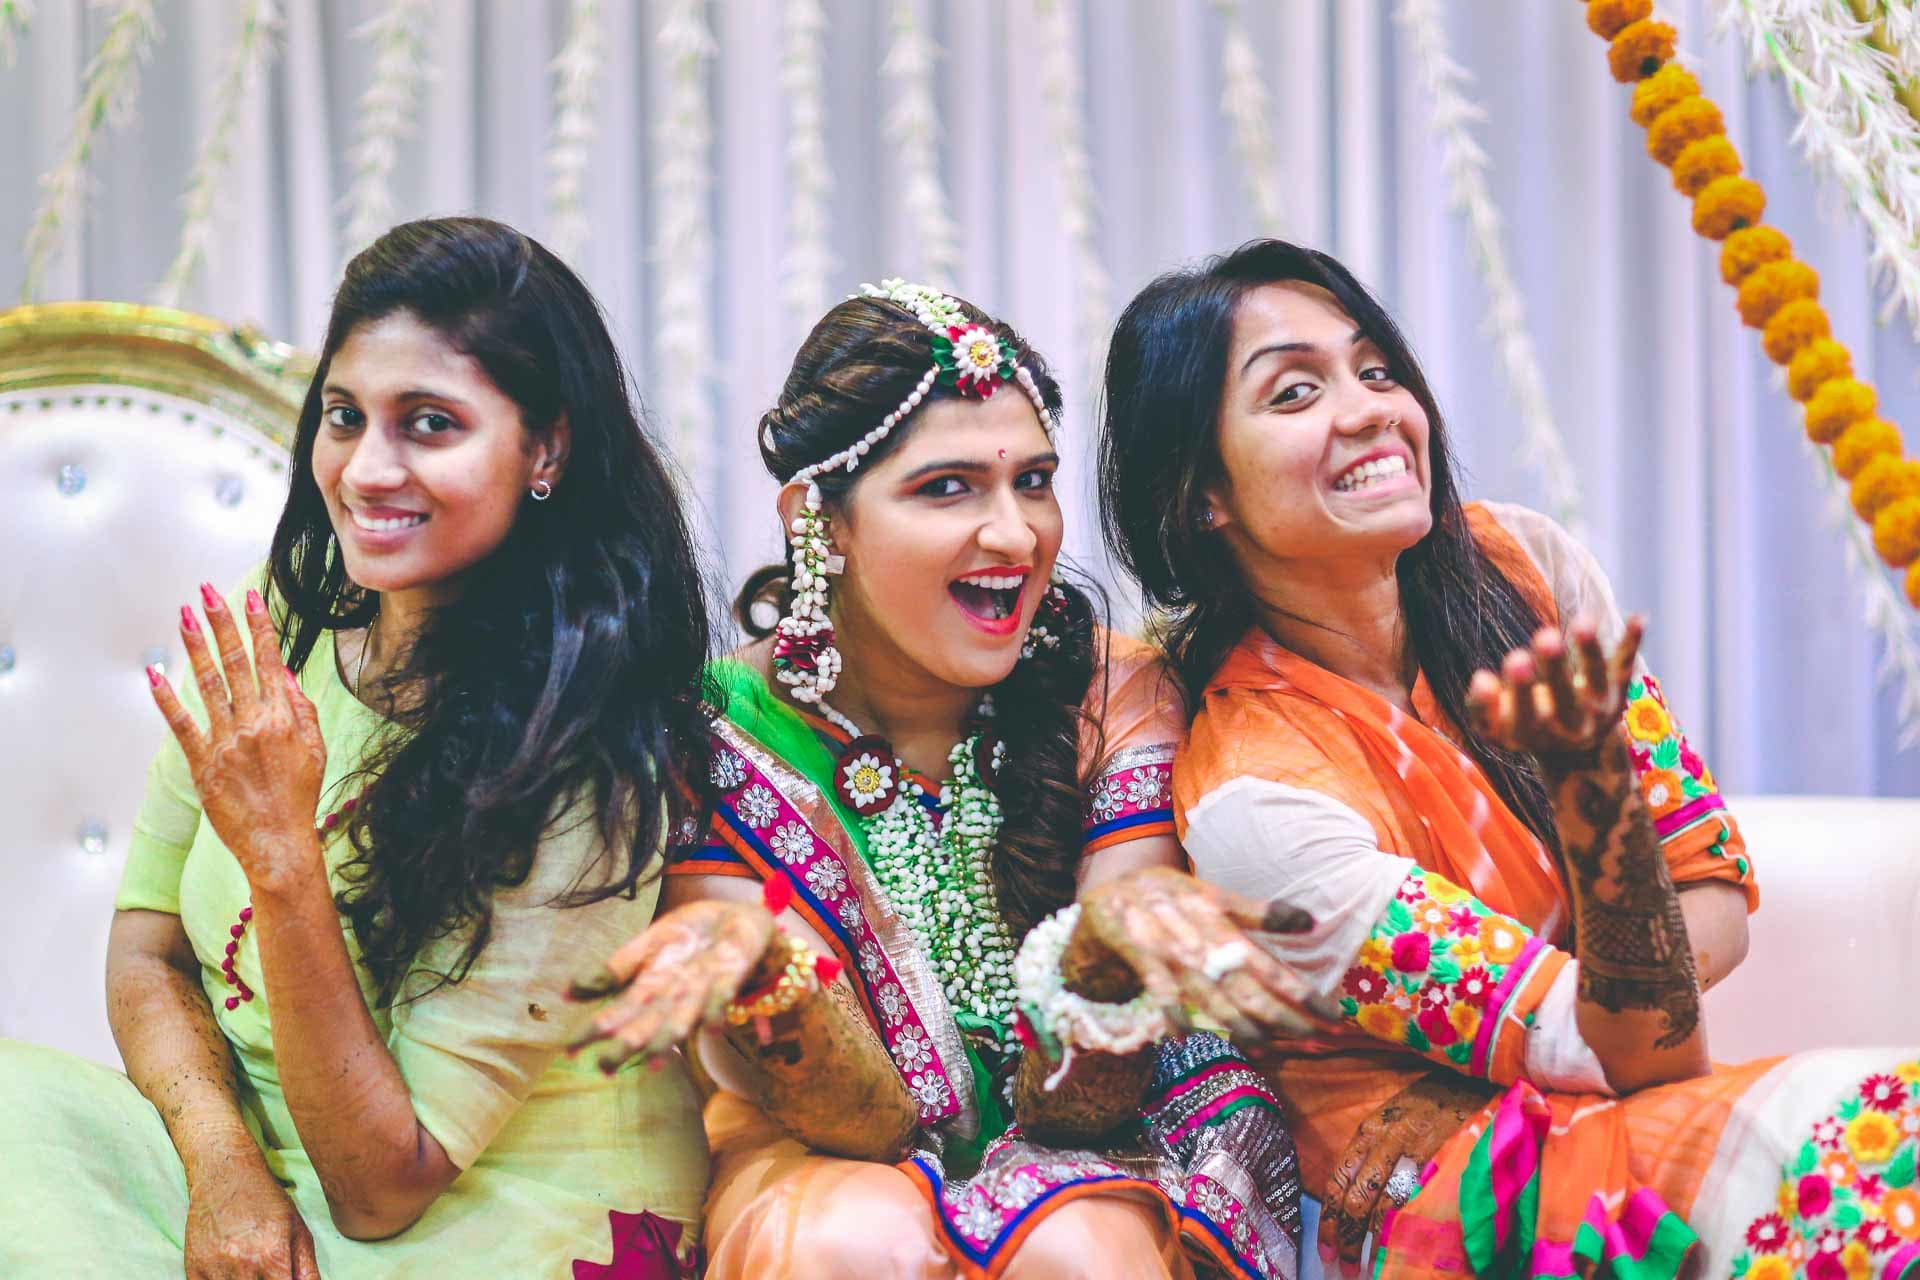 the perfect groupfie!:akshay sansare photography and films